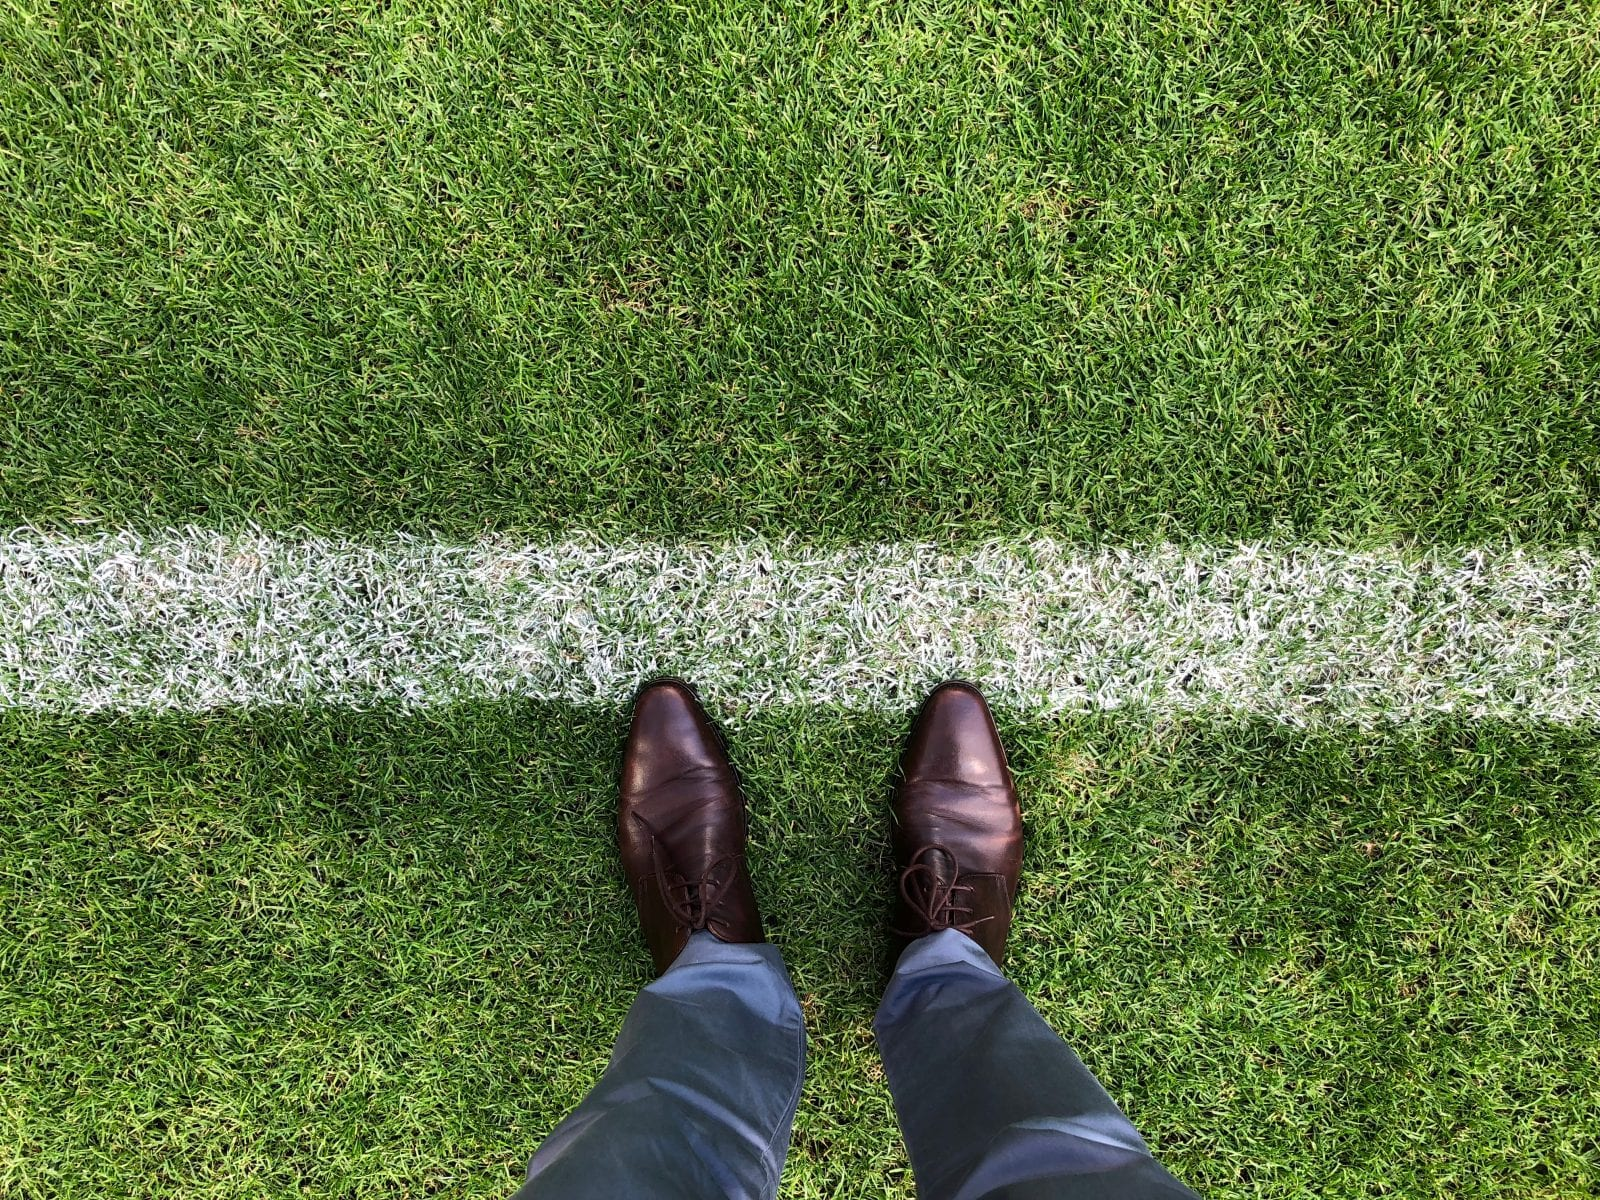 chalked line in grass with standing feet